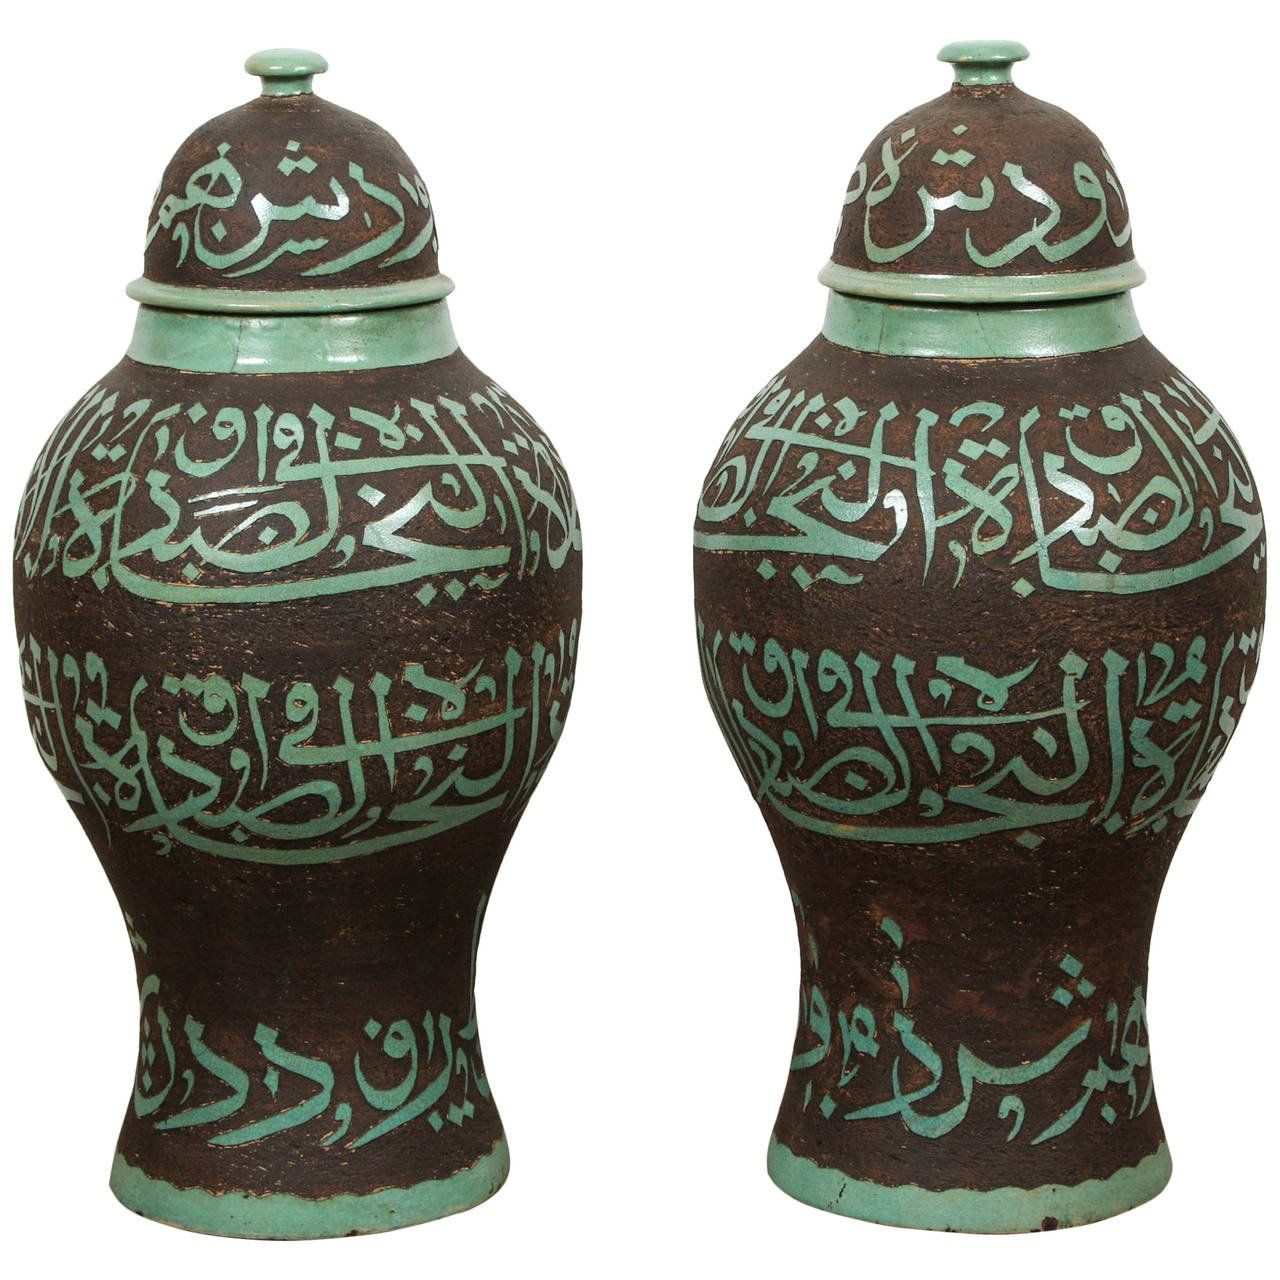 Decorative Urns With Lids Large Moroccan Brown And Green Ceramic Urns With Lid  From A